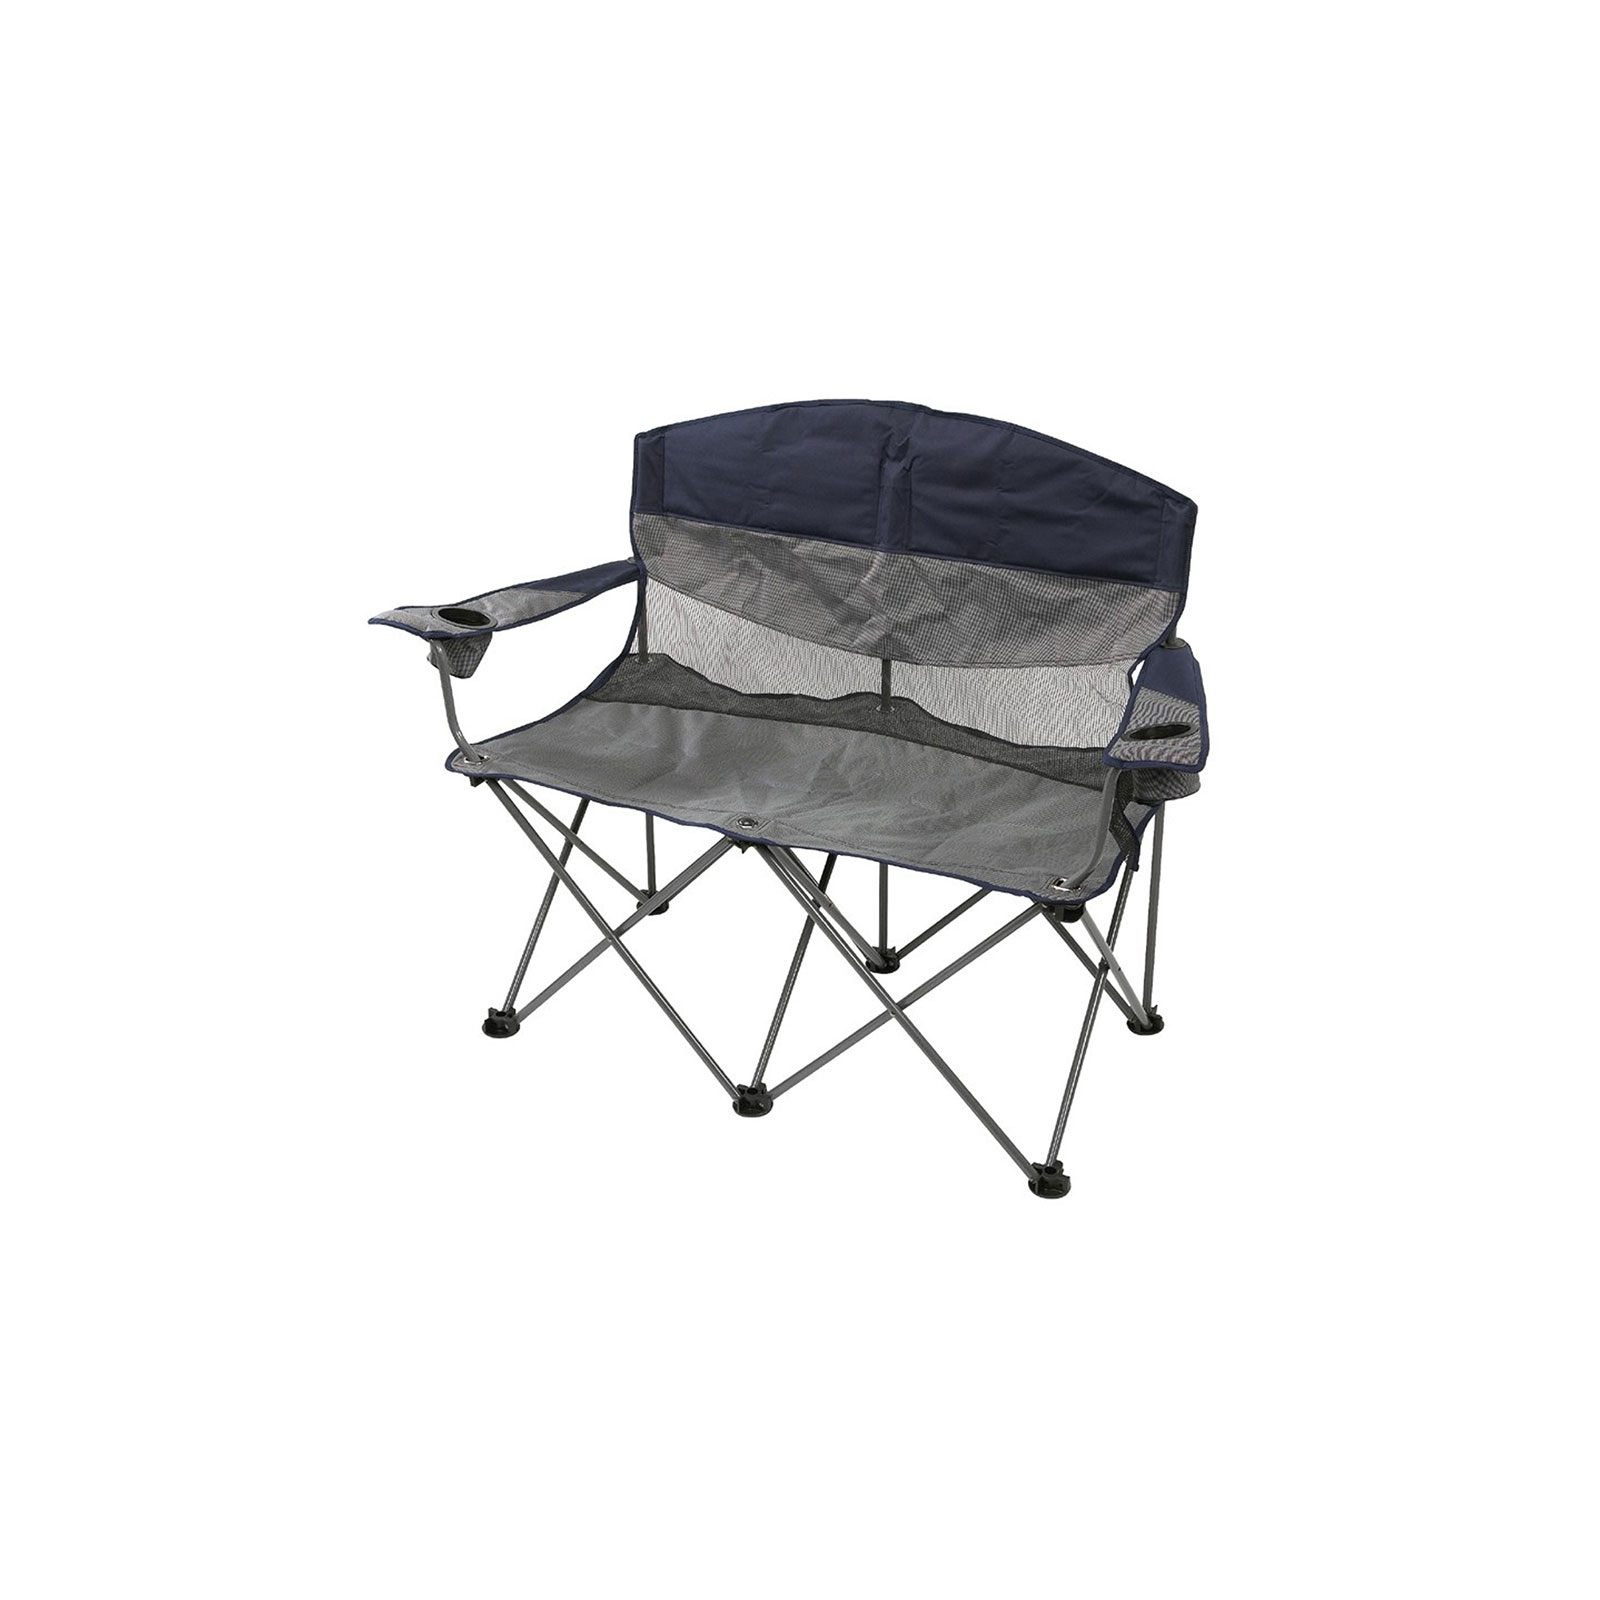 Stansport G 480 Apex Double Seat Folding Bag Chair Navy Gray